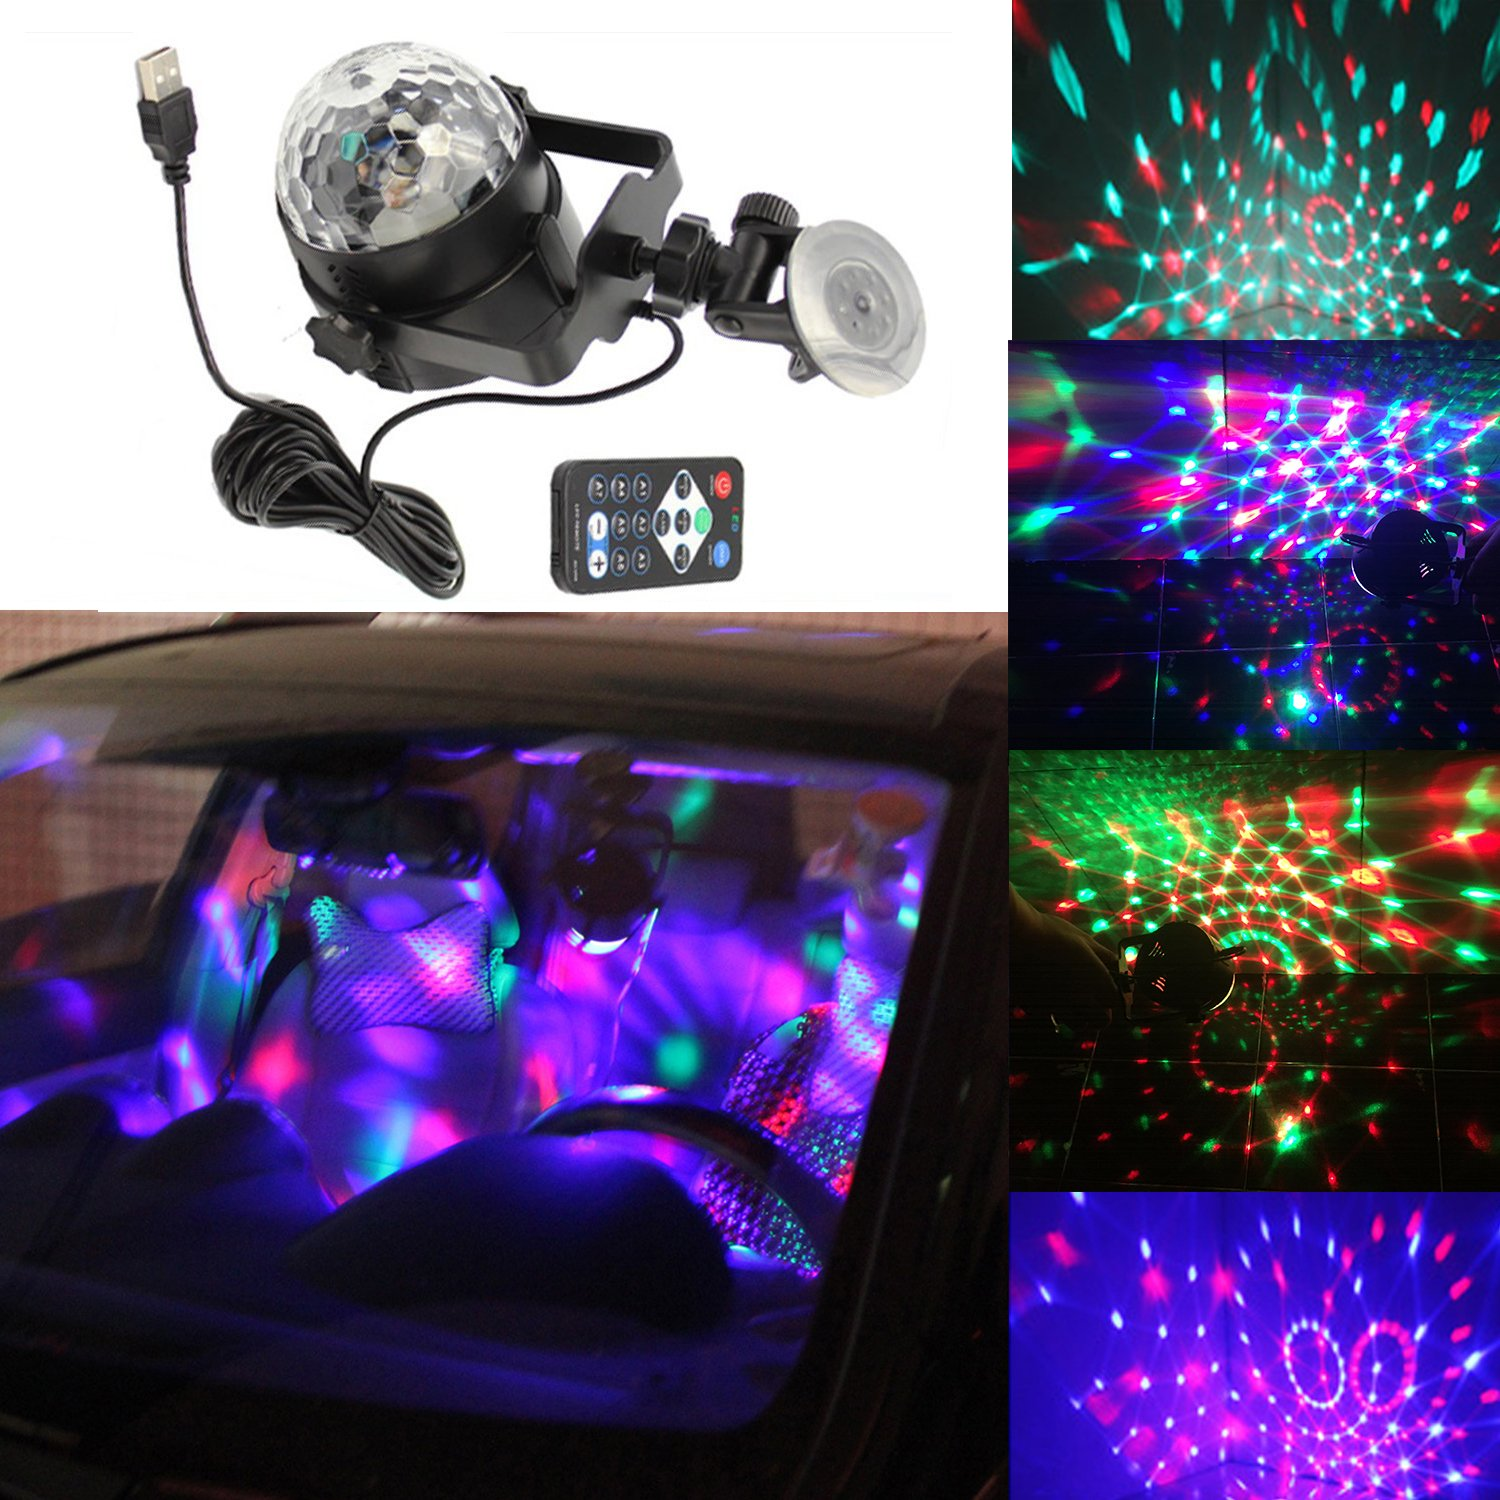 Dr.OX USB Disco Light Car DJ Sound Activated Toy Lights with Remote Control for Kids Birthday Party Bar DJ Home Club Wedding Dancing Show by Dr.OX